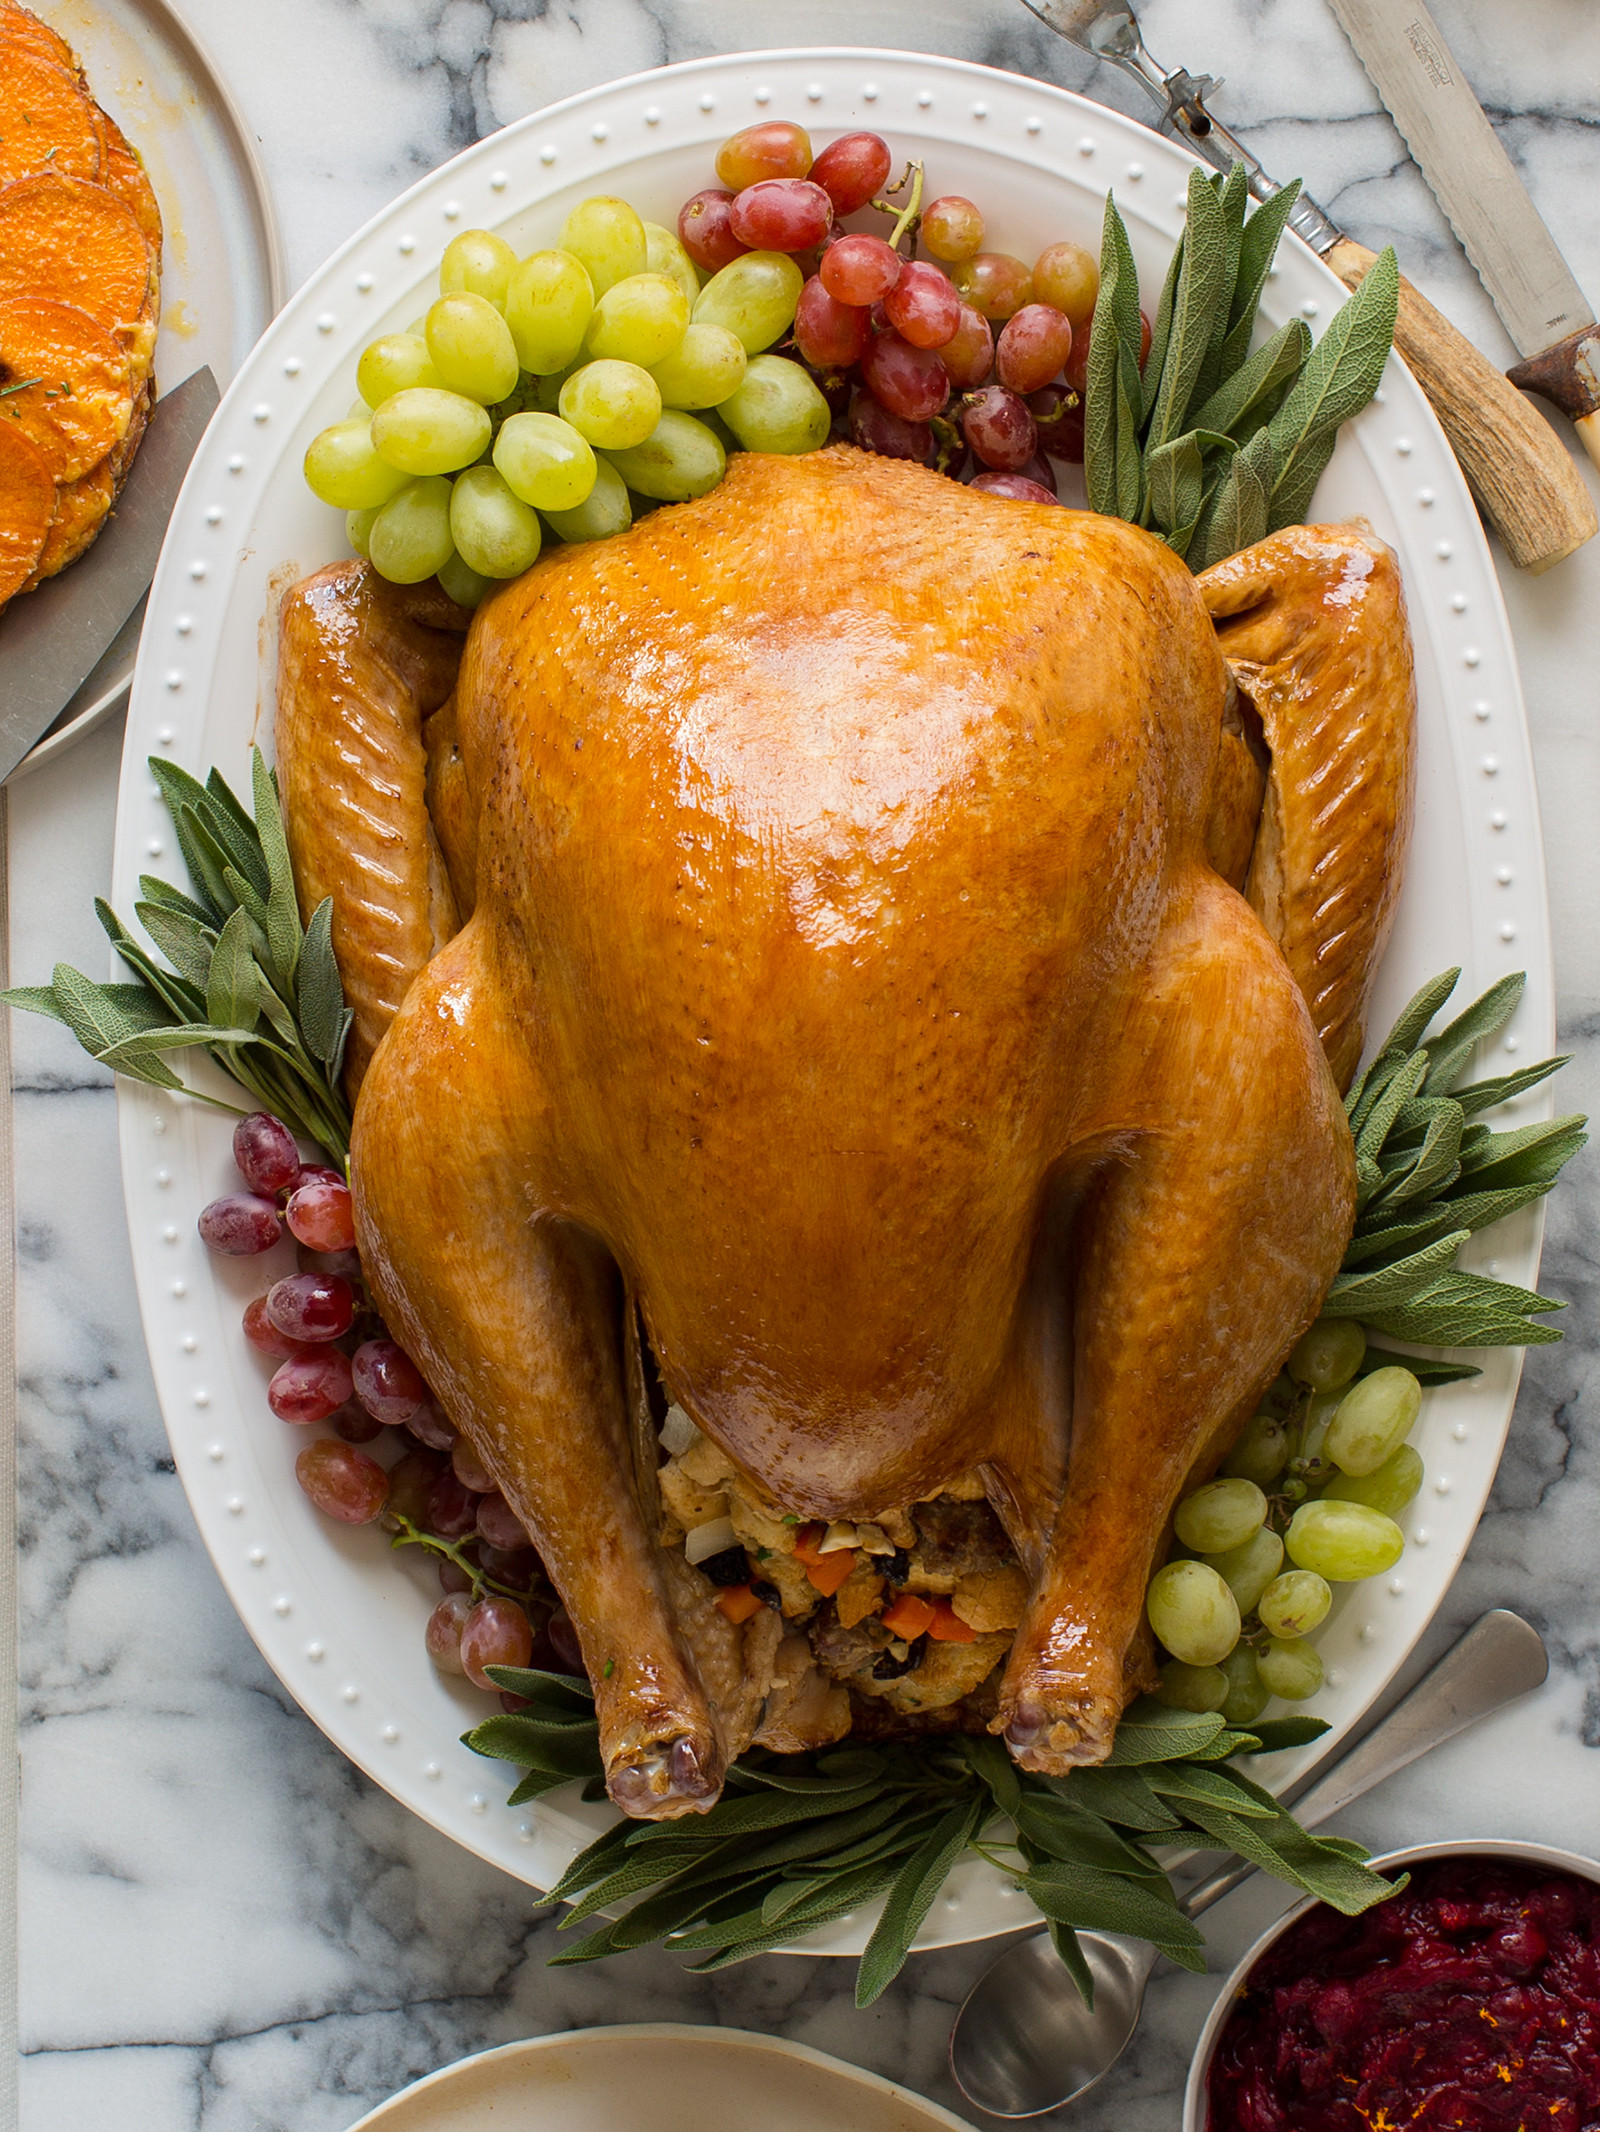 Thanksgiving Video Full Of Turkey  Citrus and Herb Roasted Turkey Thanksgiving